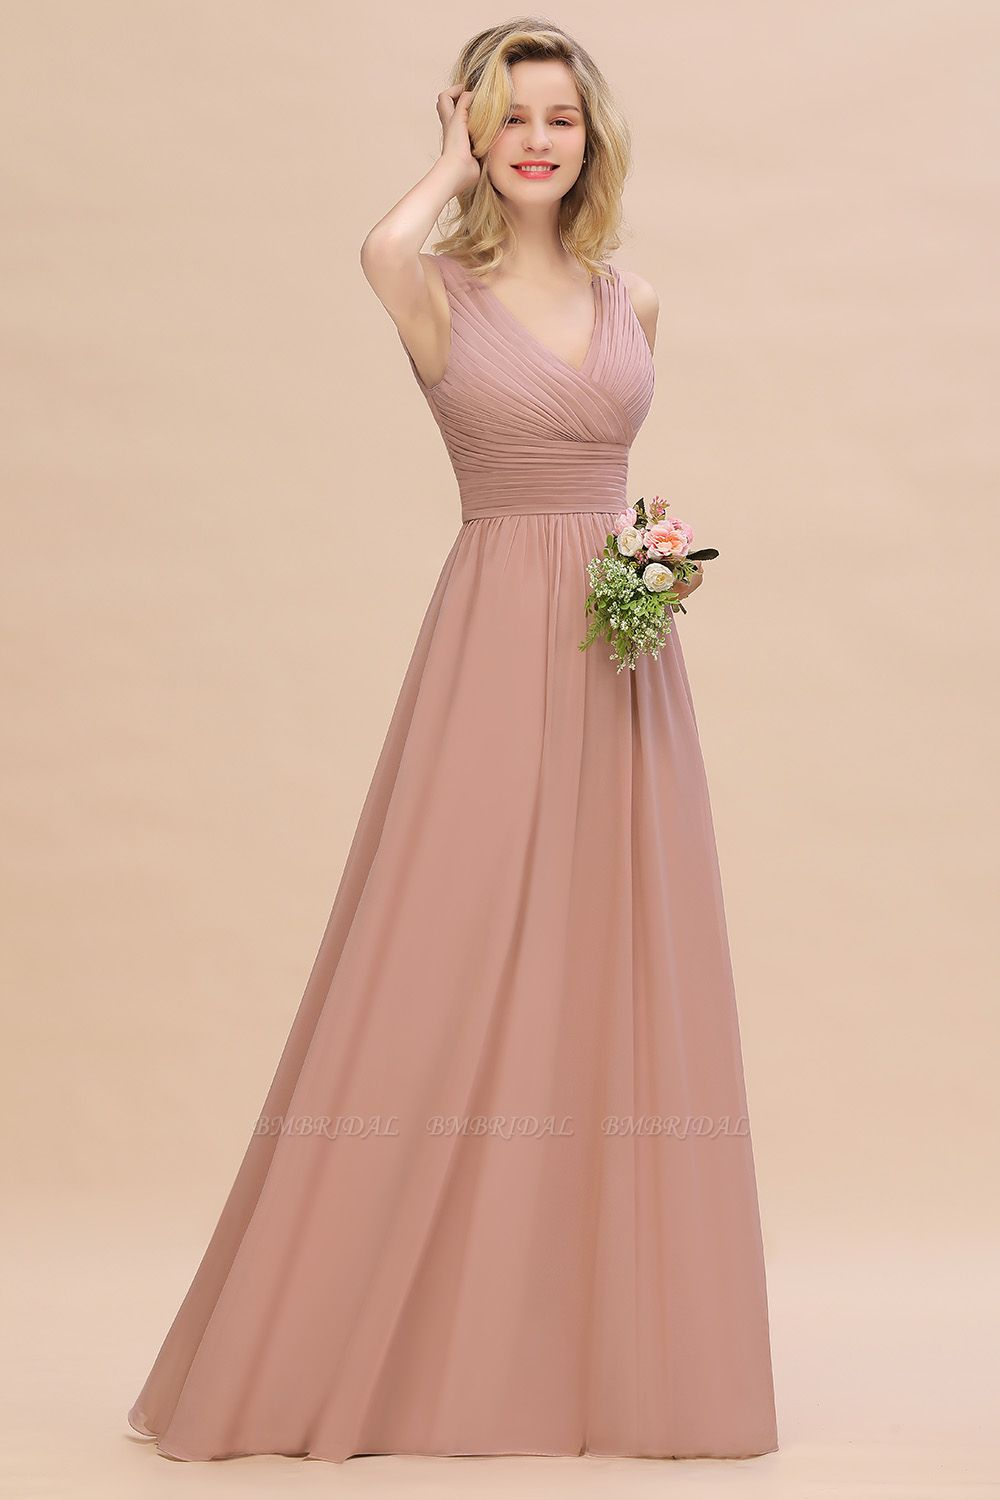 Elegant V-Neck Dusty Rose Chiffon Bridesmaid Dress with Ruffle